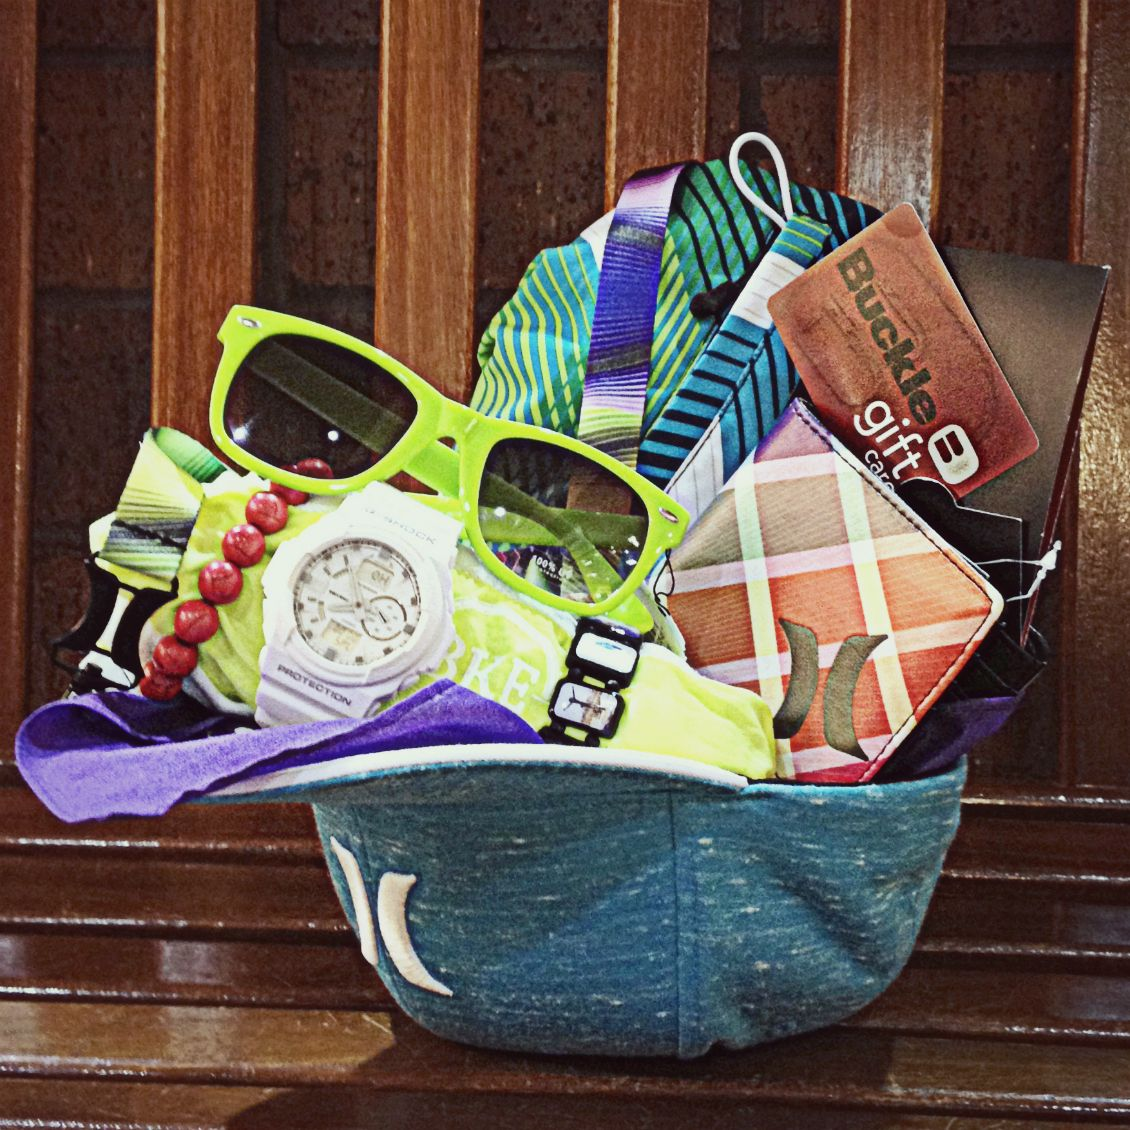 Gift basket anyone like the idea gift ideas pinterest gift gift basket anyone like the idea negle Image collections